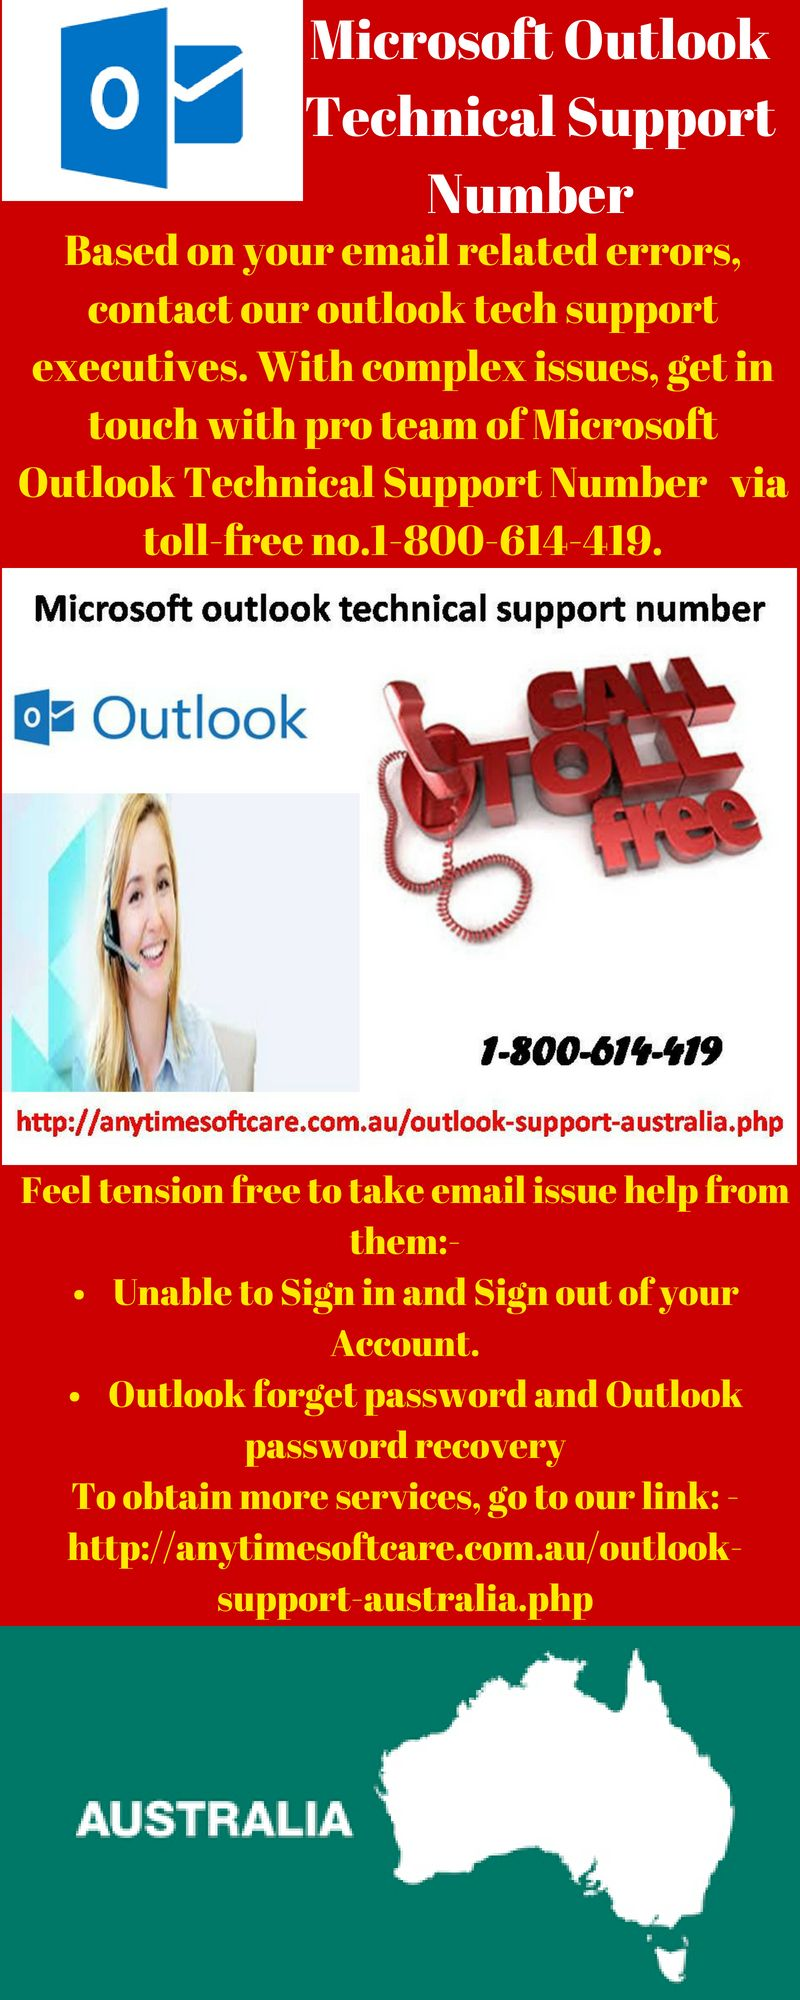 Based on your email related errors, contact our outlook